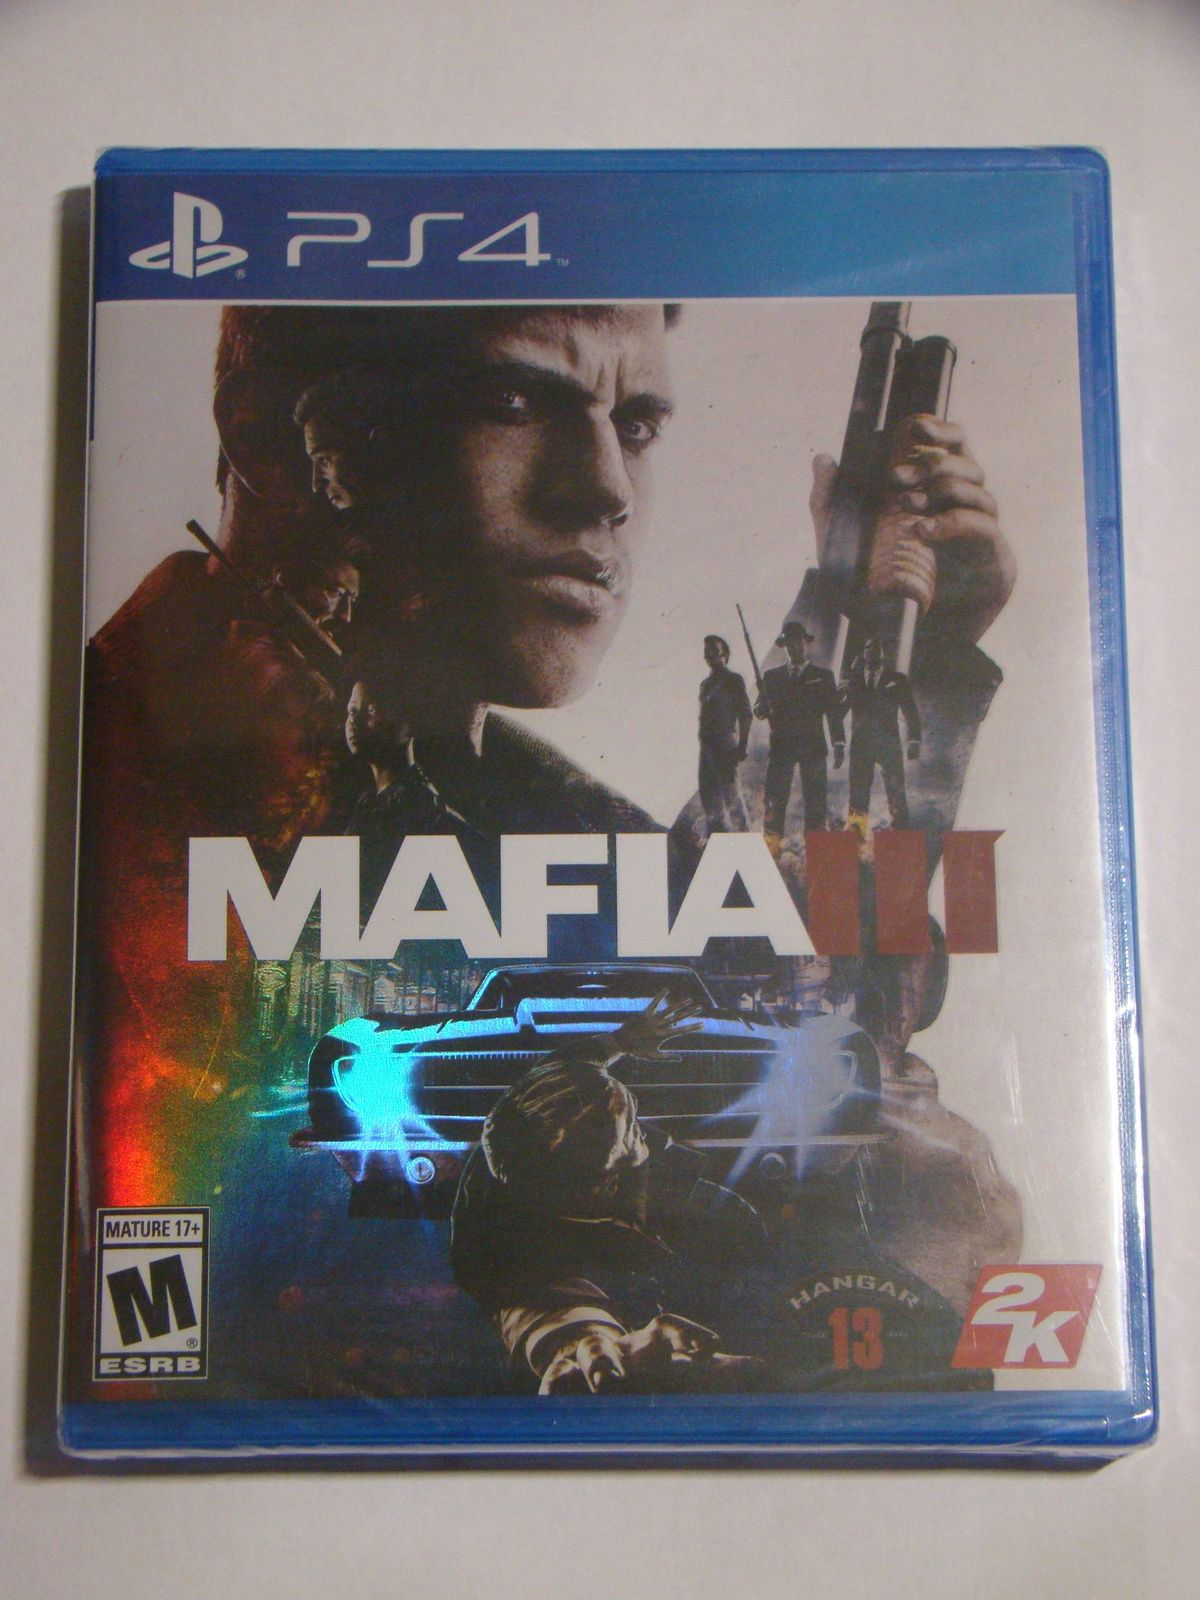 Playstation 4 MAFIA III (New) (With images